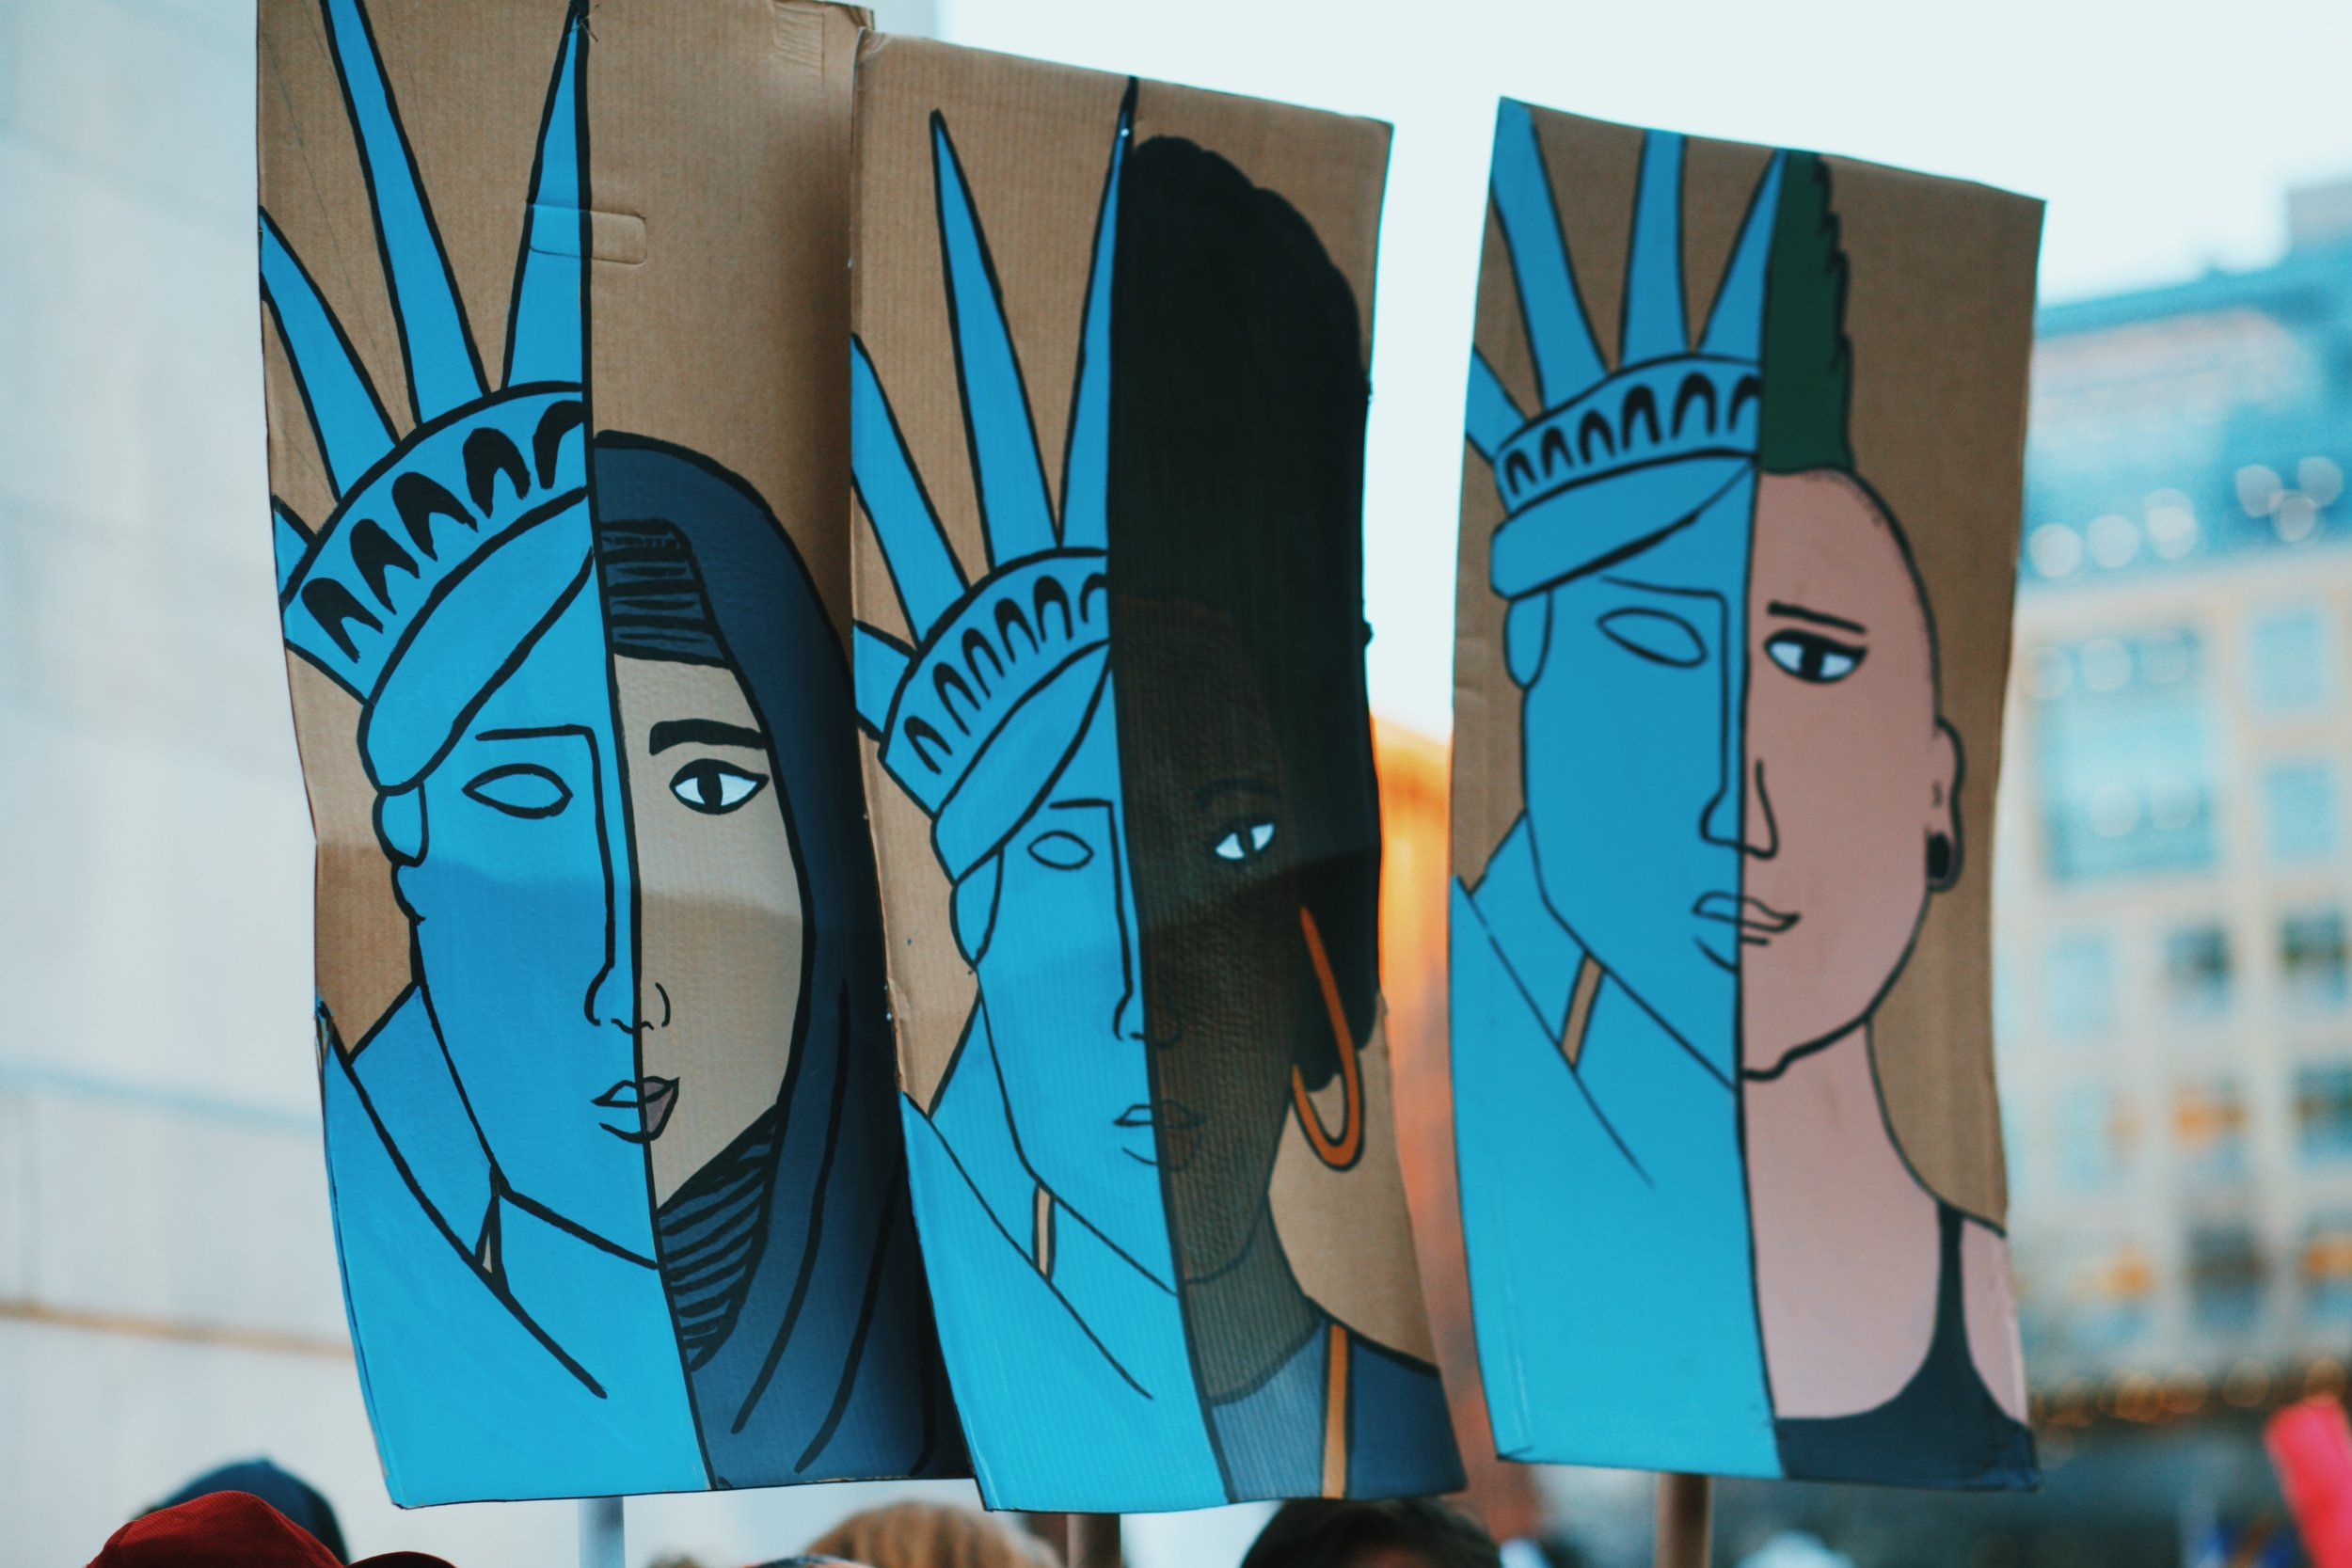 Modern lady liberties leading the movement for all women.